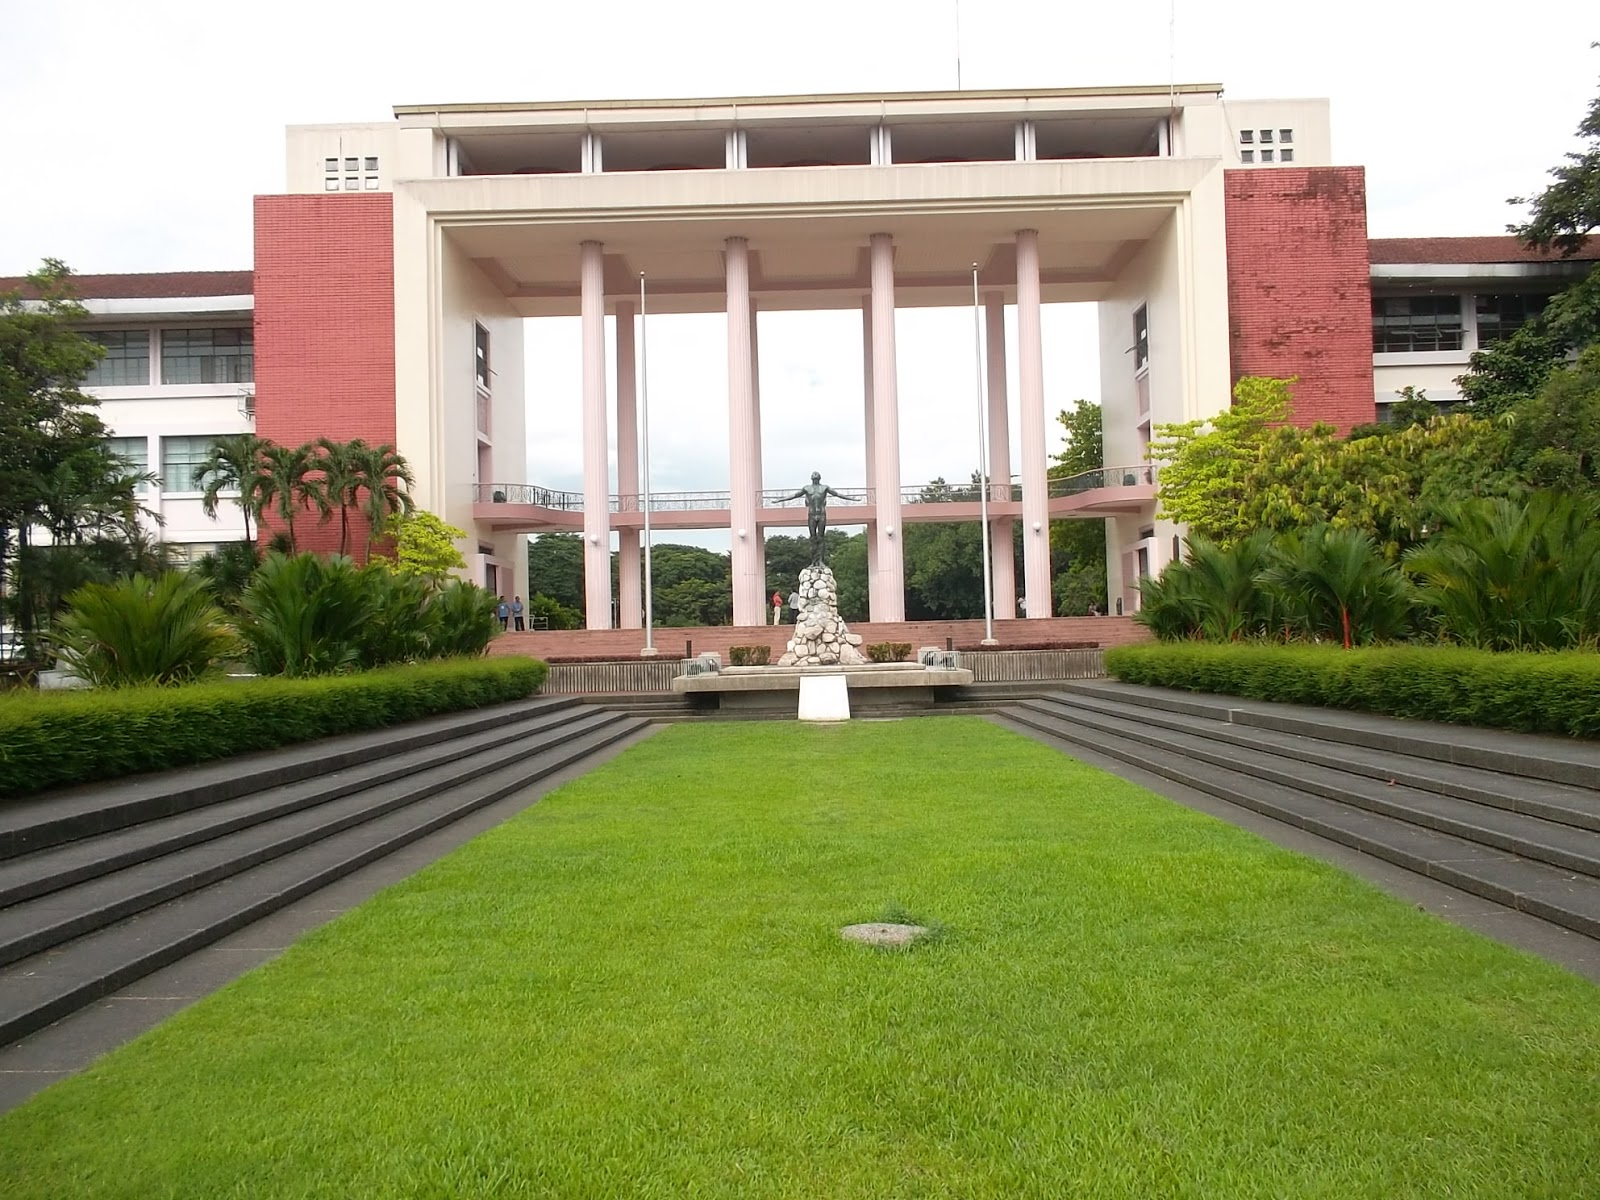 University of The Philippines Wallpaper The Oblation at The University